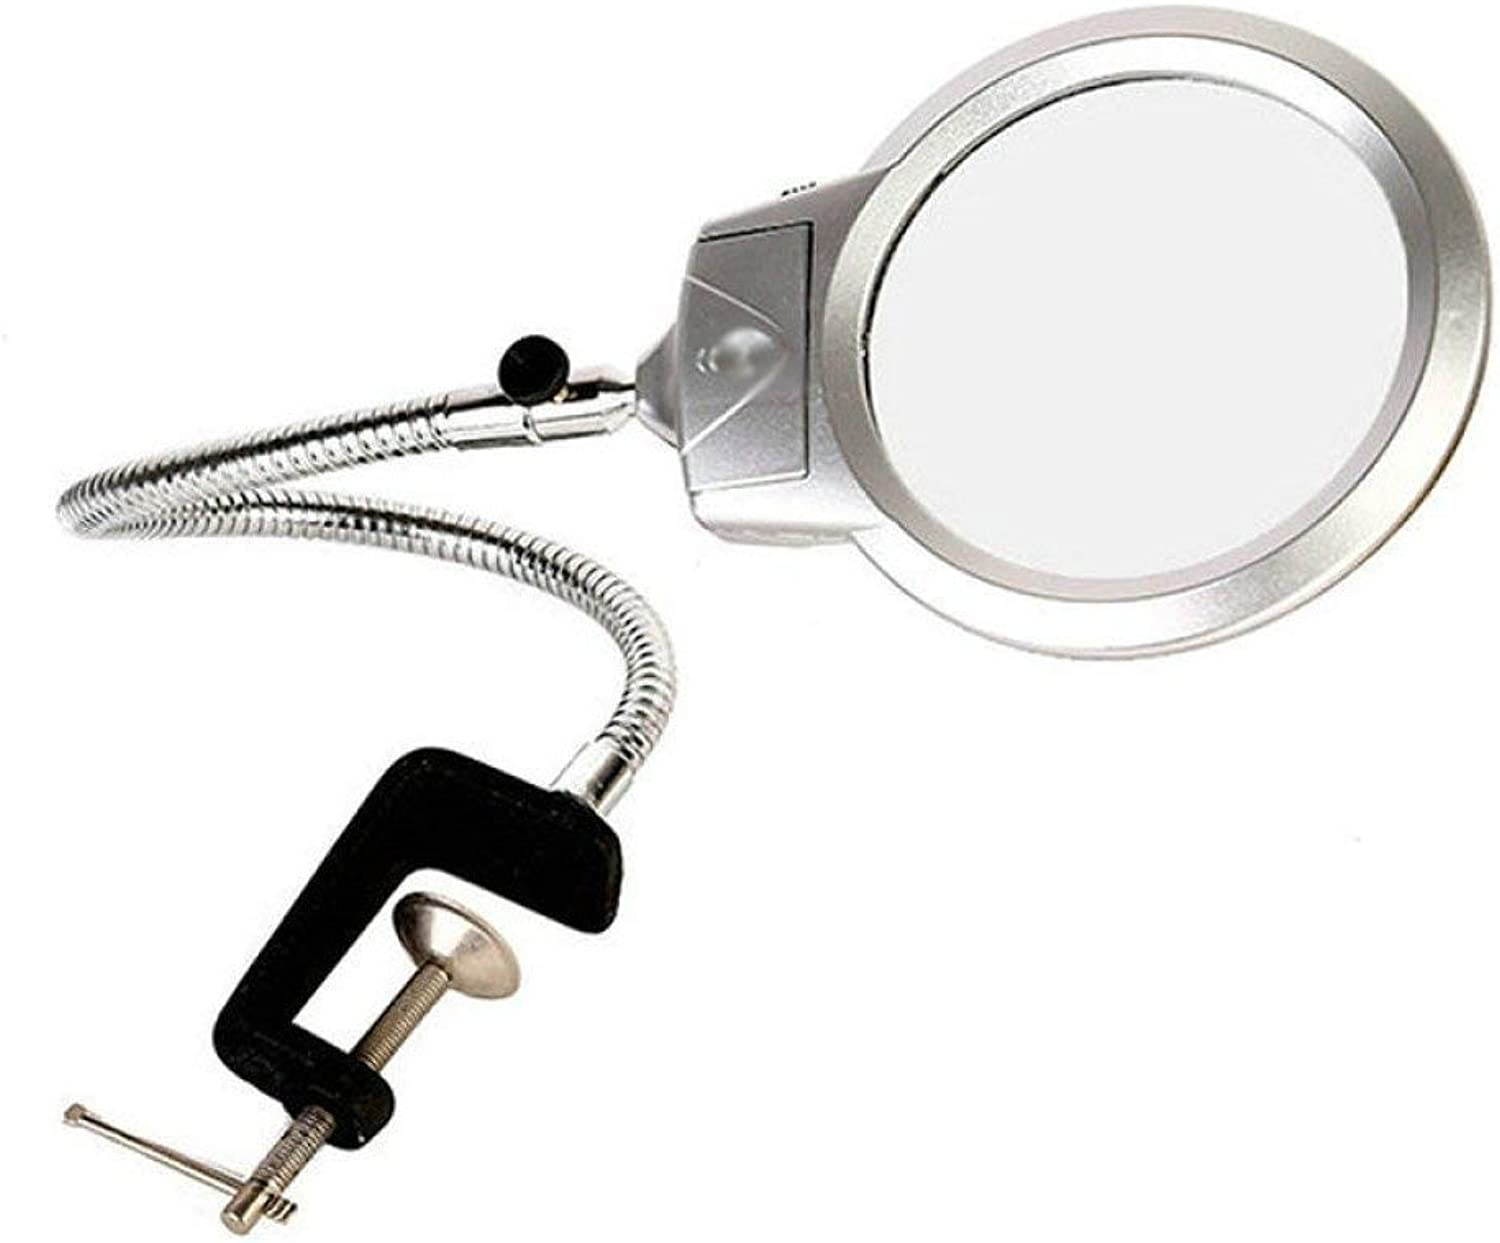 Qifengshop LED lighting magnifier for youth, enthusiasts, professionals, reading books, newspaper maps, coins, jewelry hobbies and craft magnifiers ( color   PLASTICCLIP )